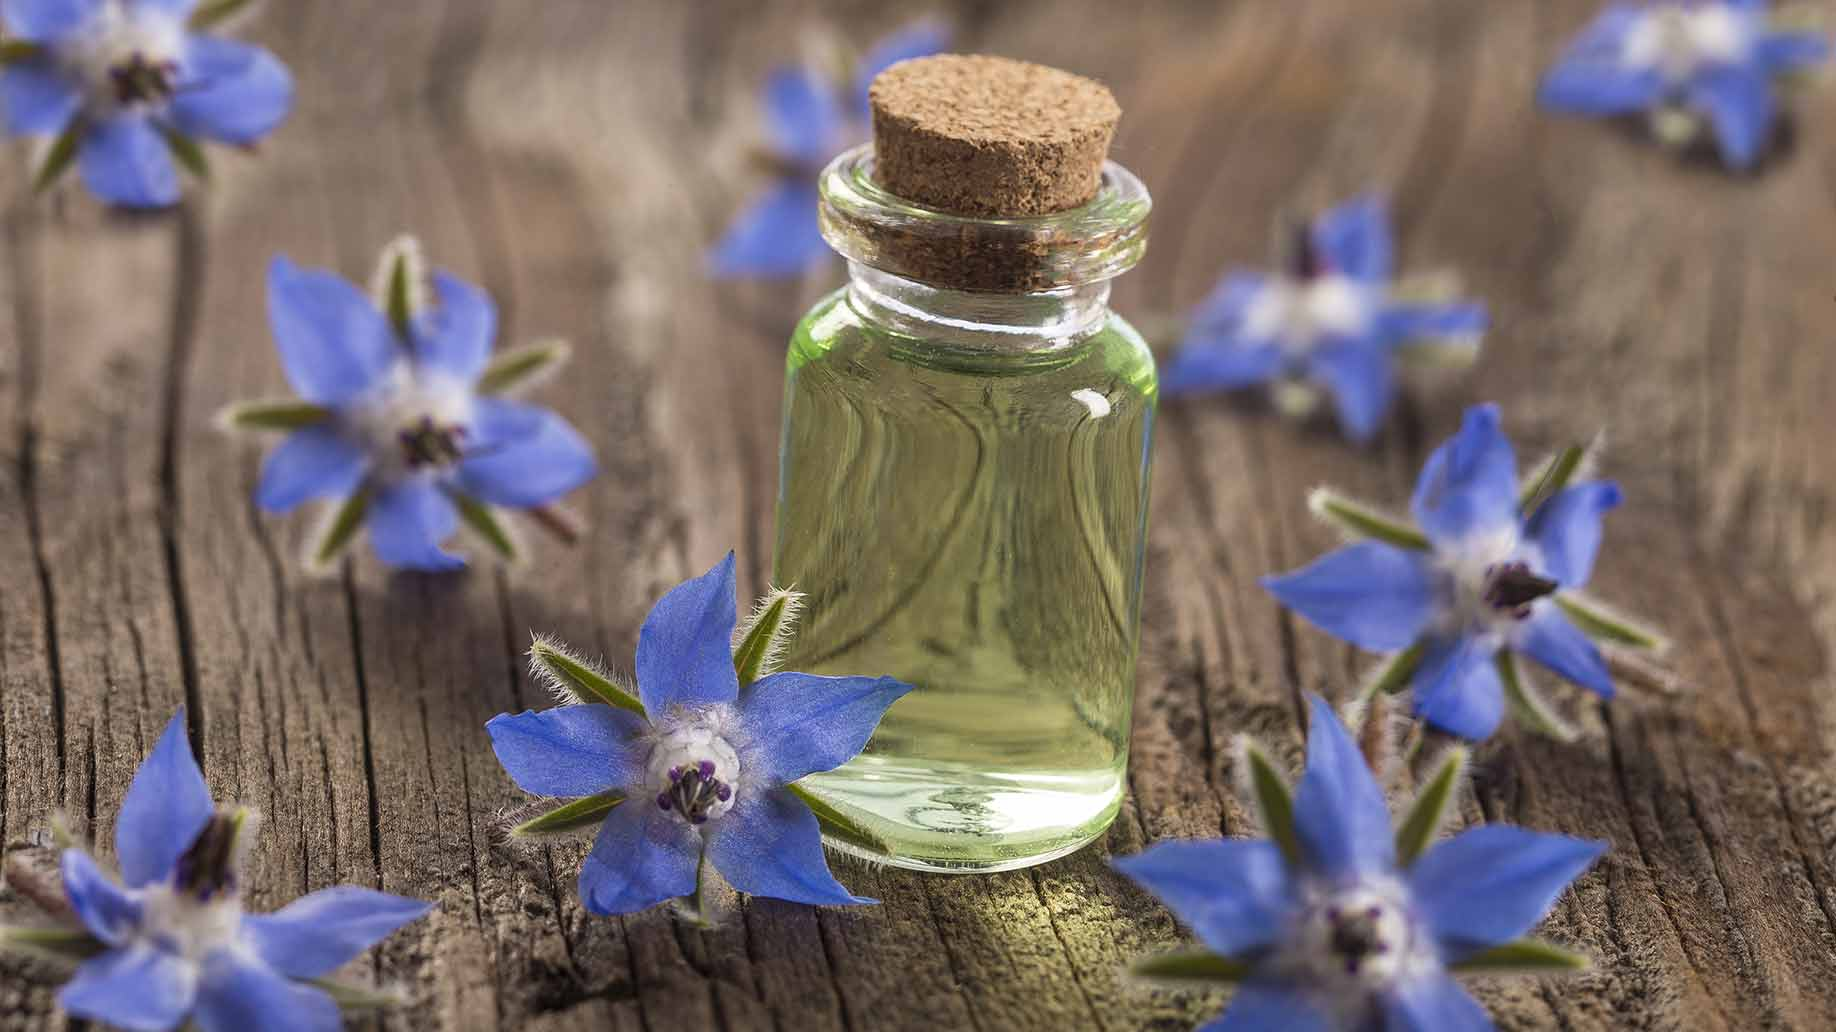 borage seed oil flowers arthritis natural remedies